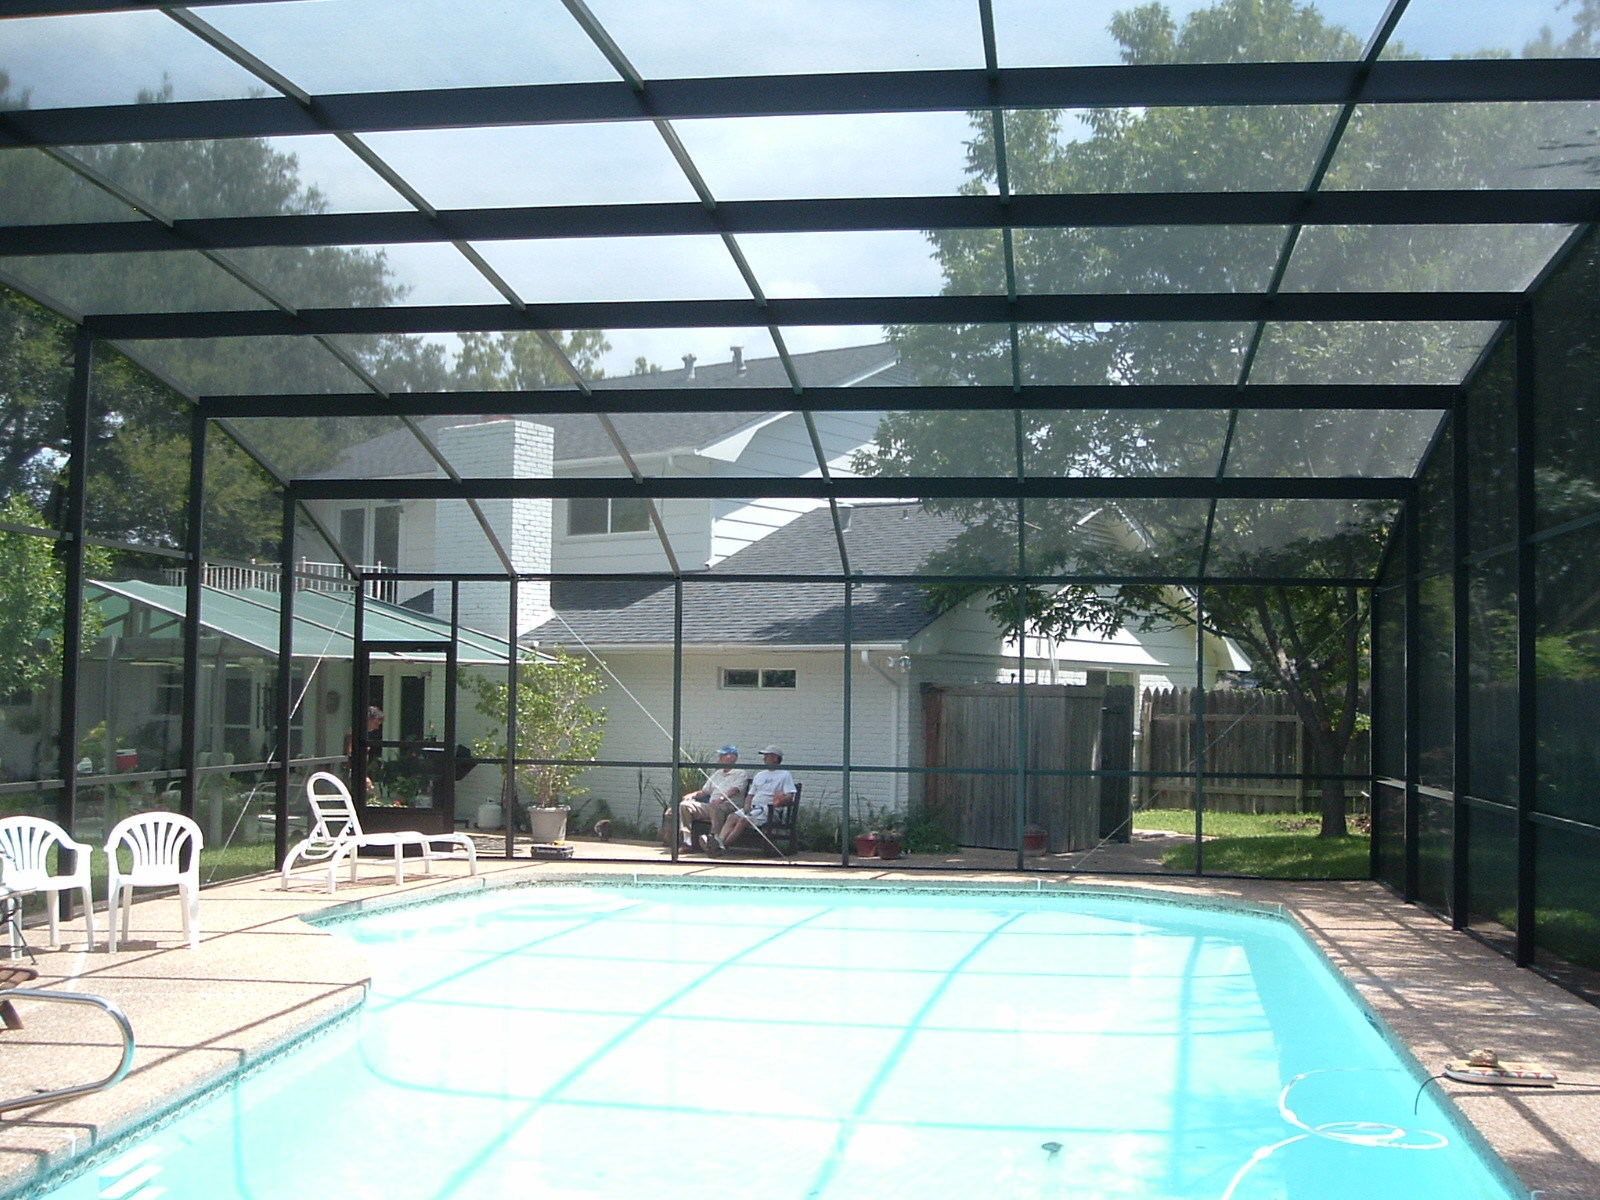 Pool Enclosure inside view